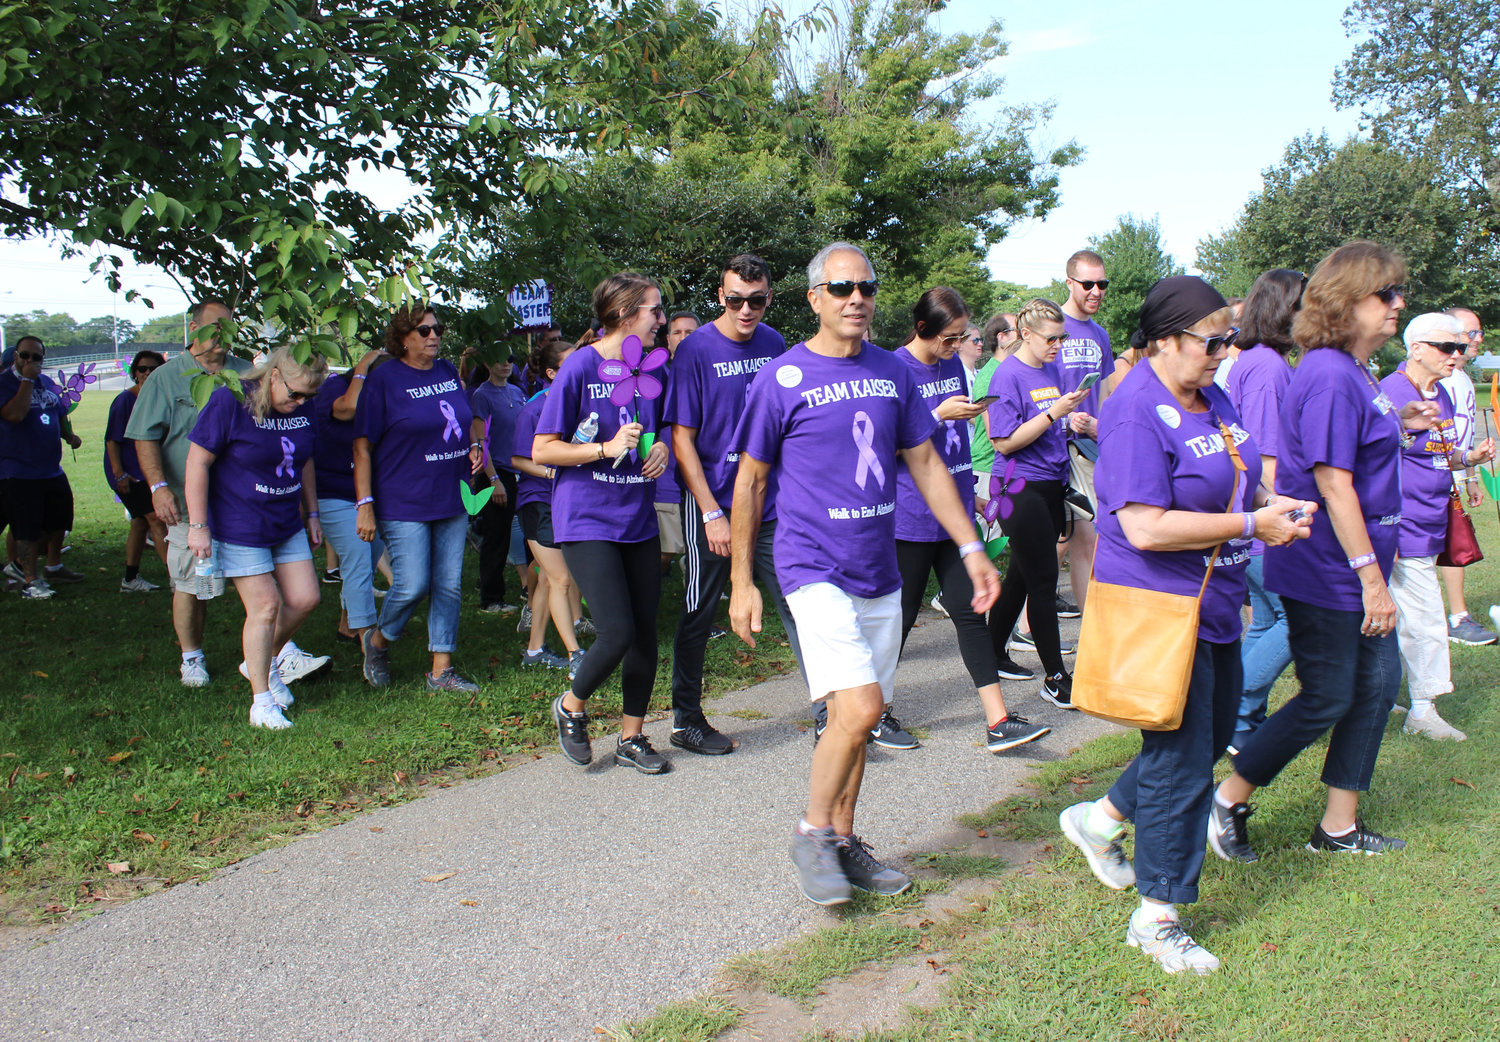 The event drew 875 participants and 128 teams, all walking to fund research for a cure and provide services for those living with the disease and their caregivers.